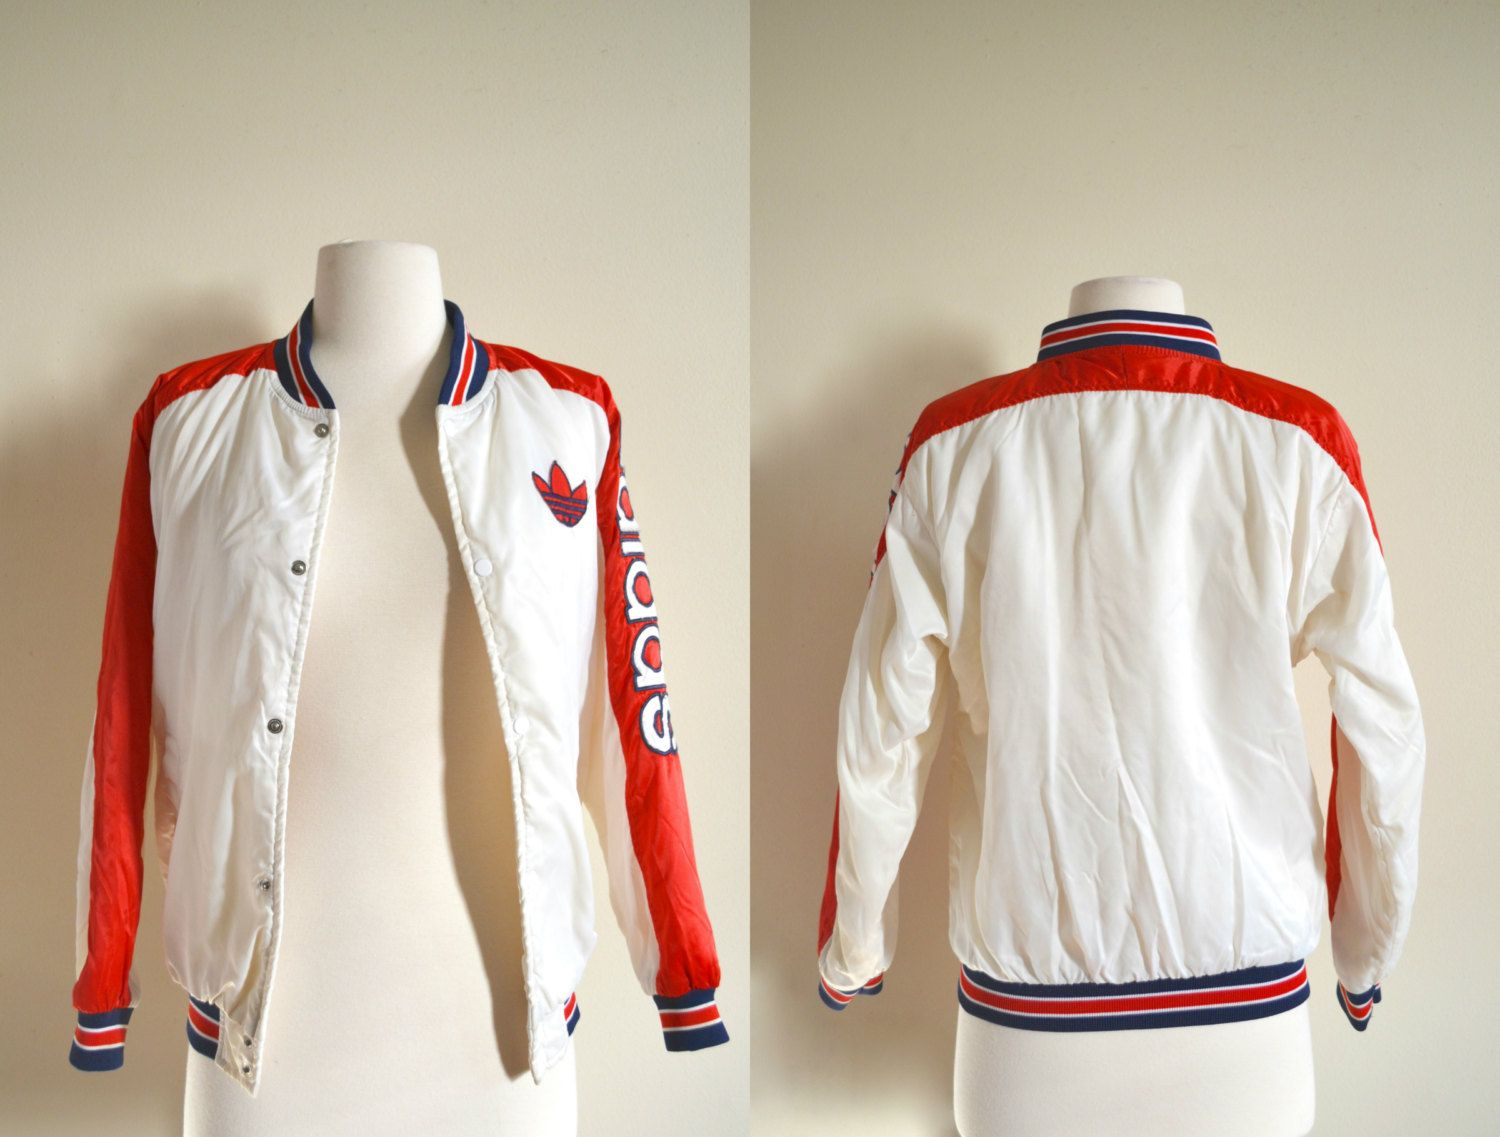 Vintage Adidas Bomber Jacket Red White And Blue Starter